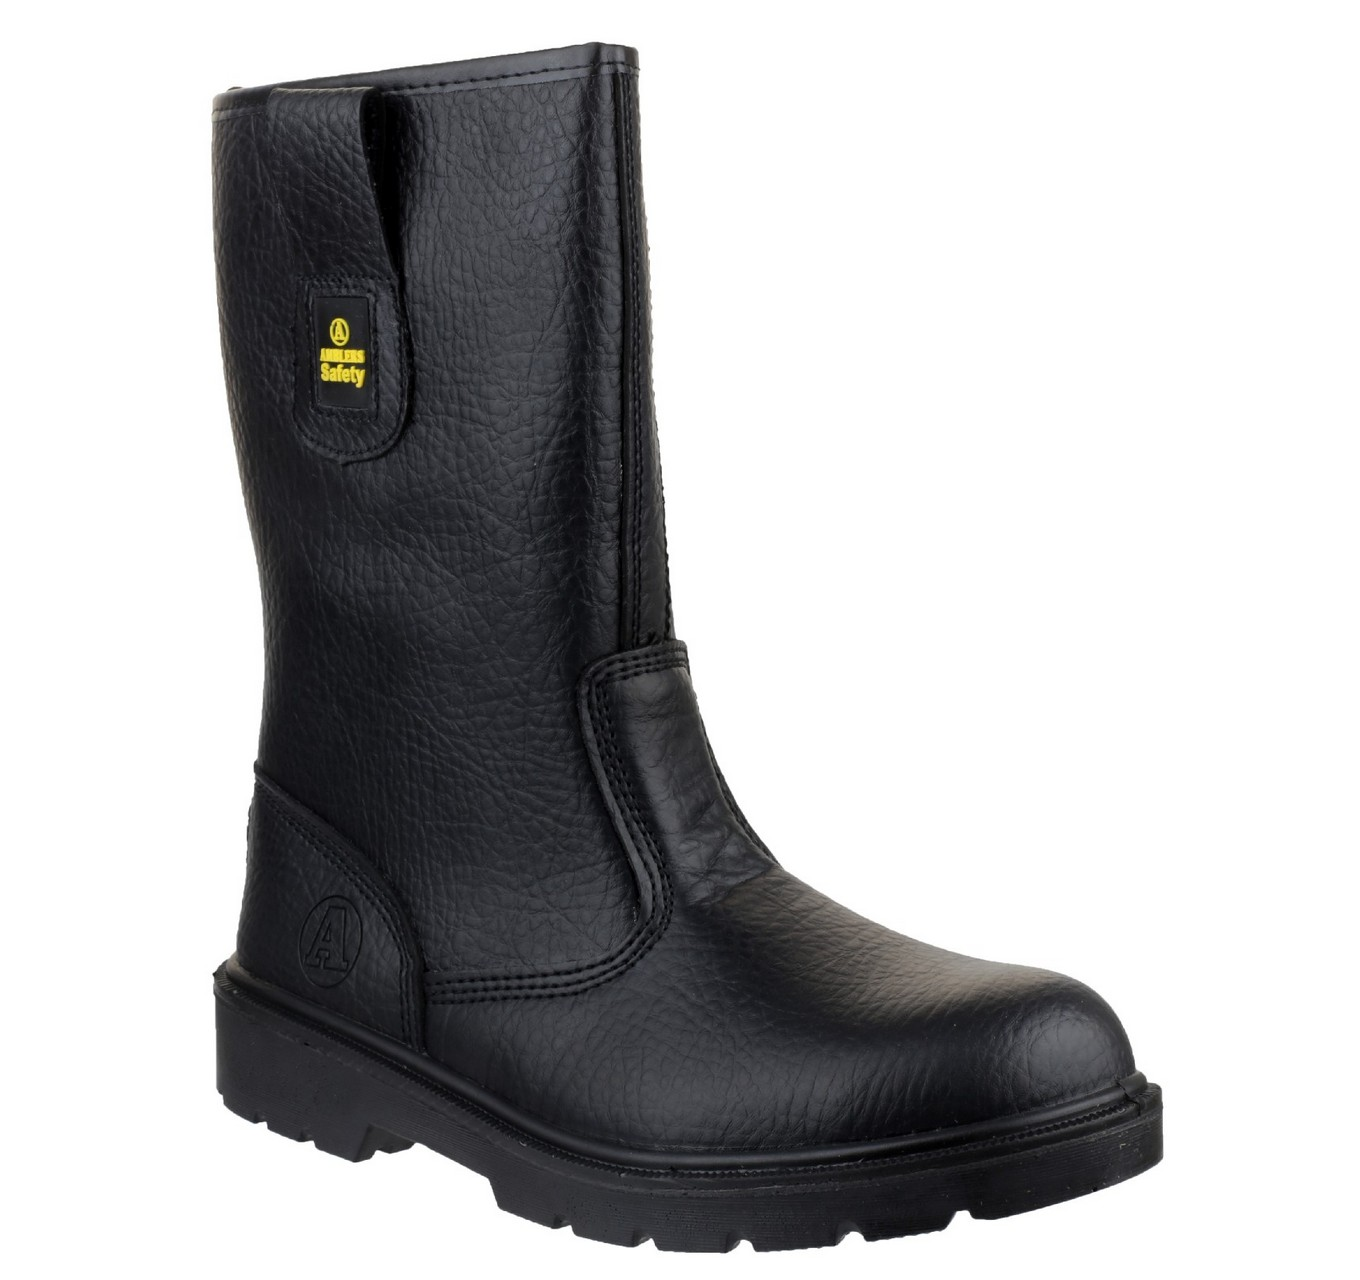 Rigger Boot FS224 Black 7